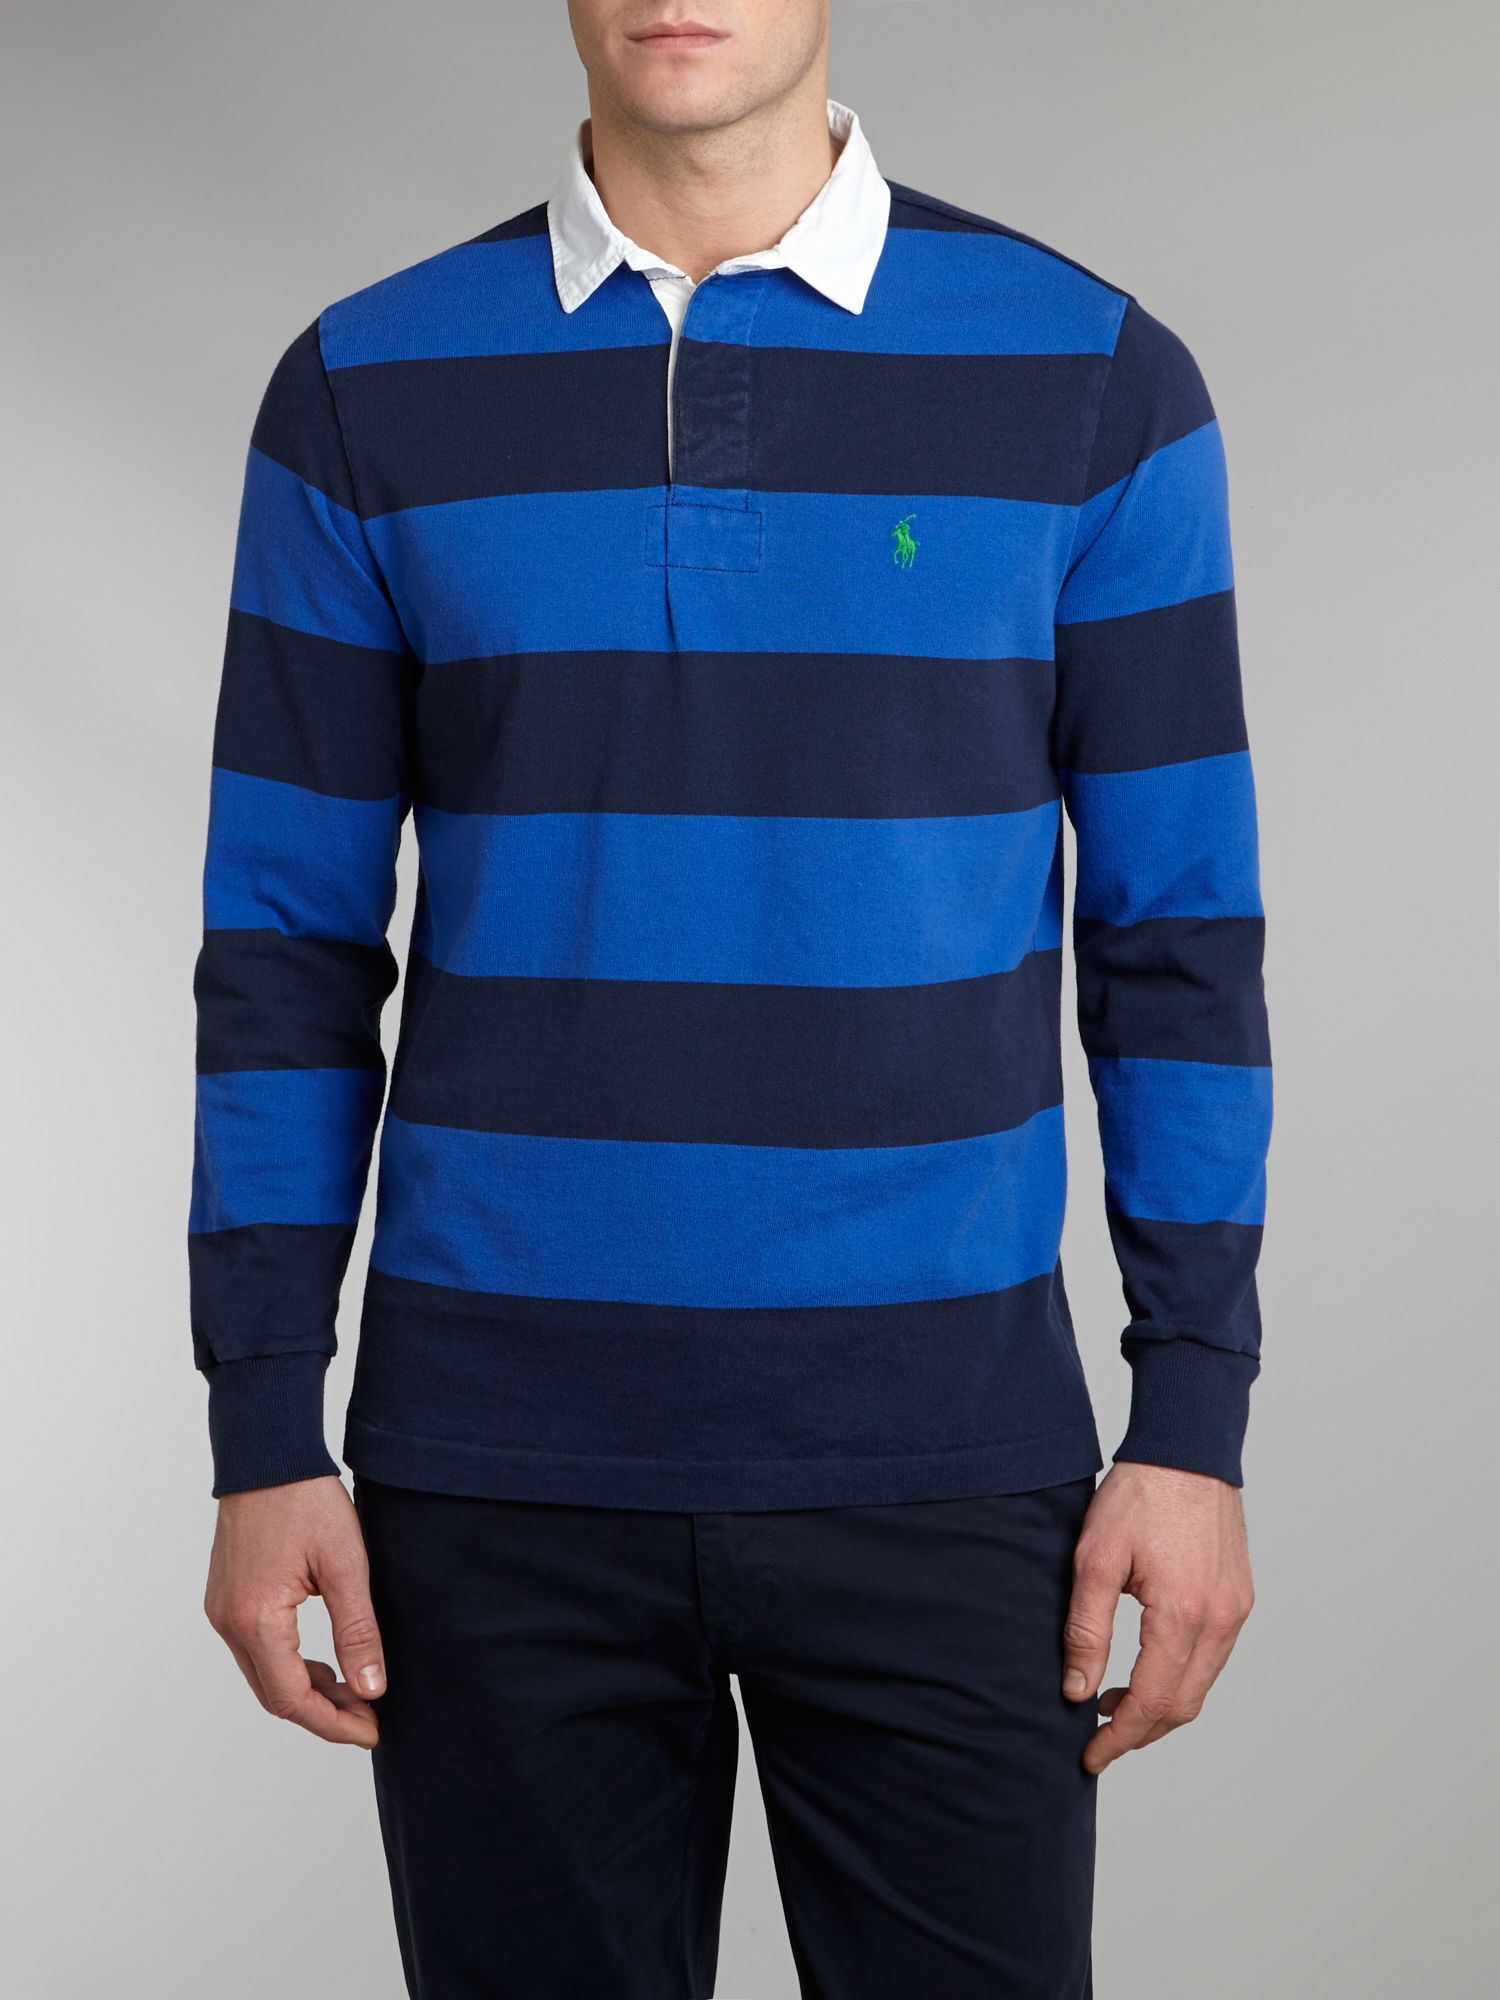 Striped custom fit rugby top